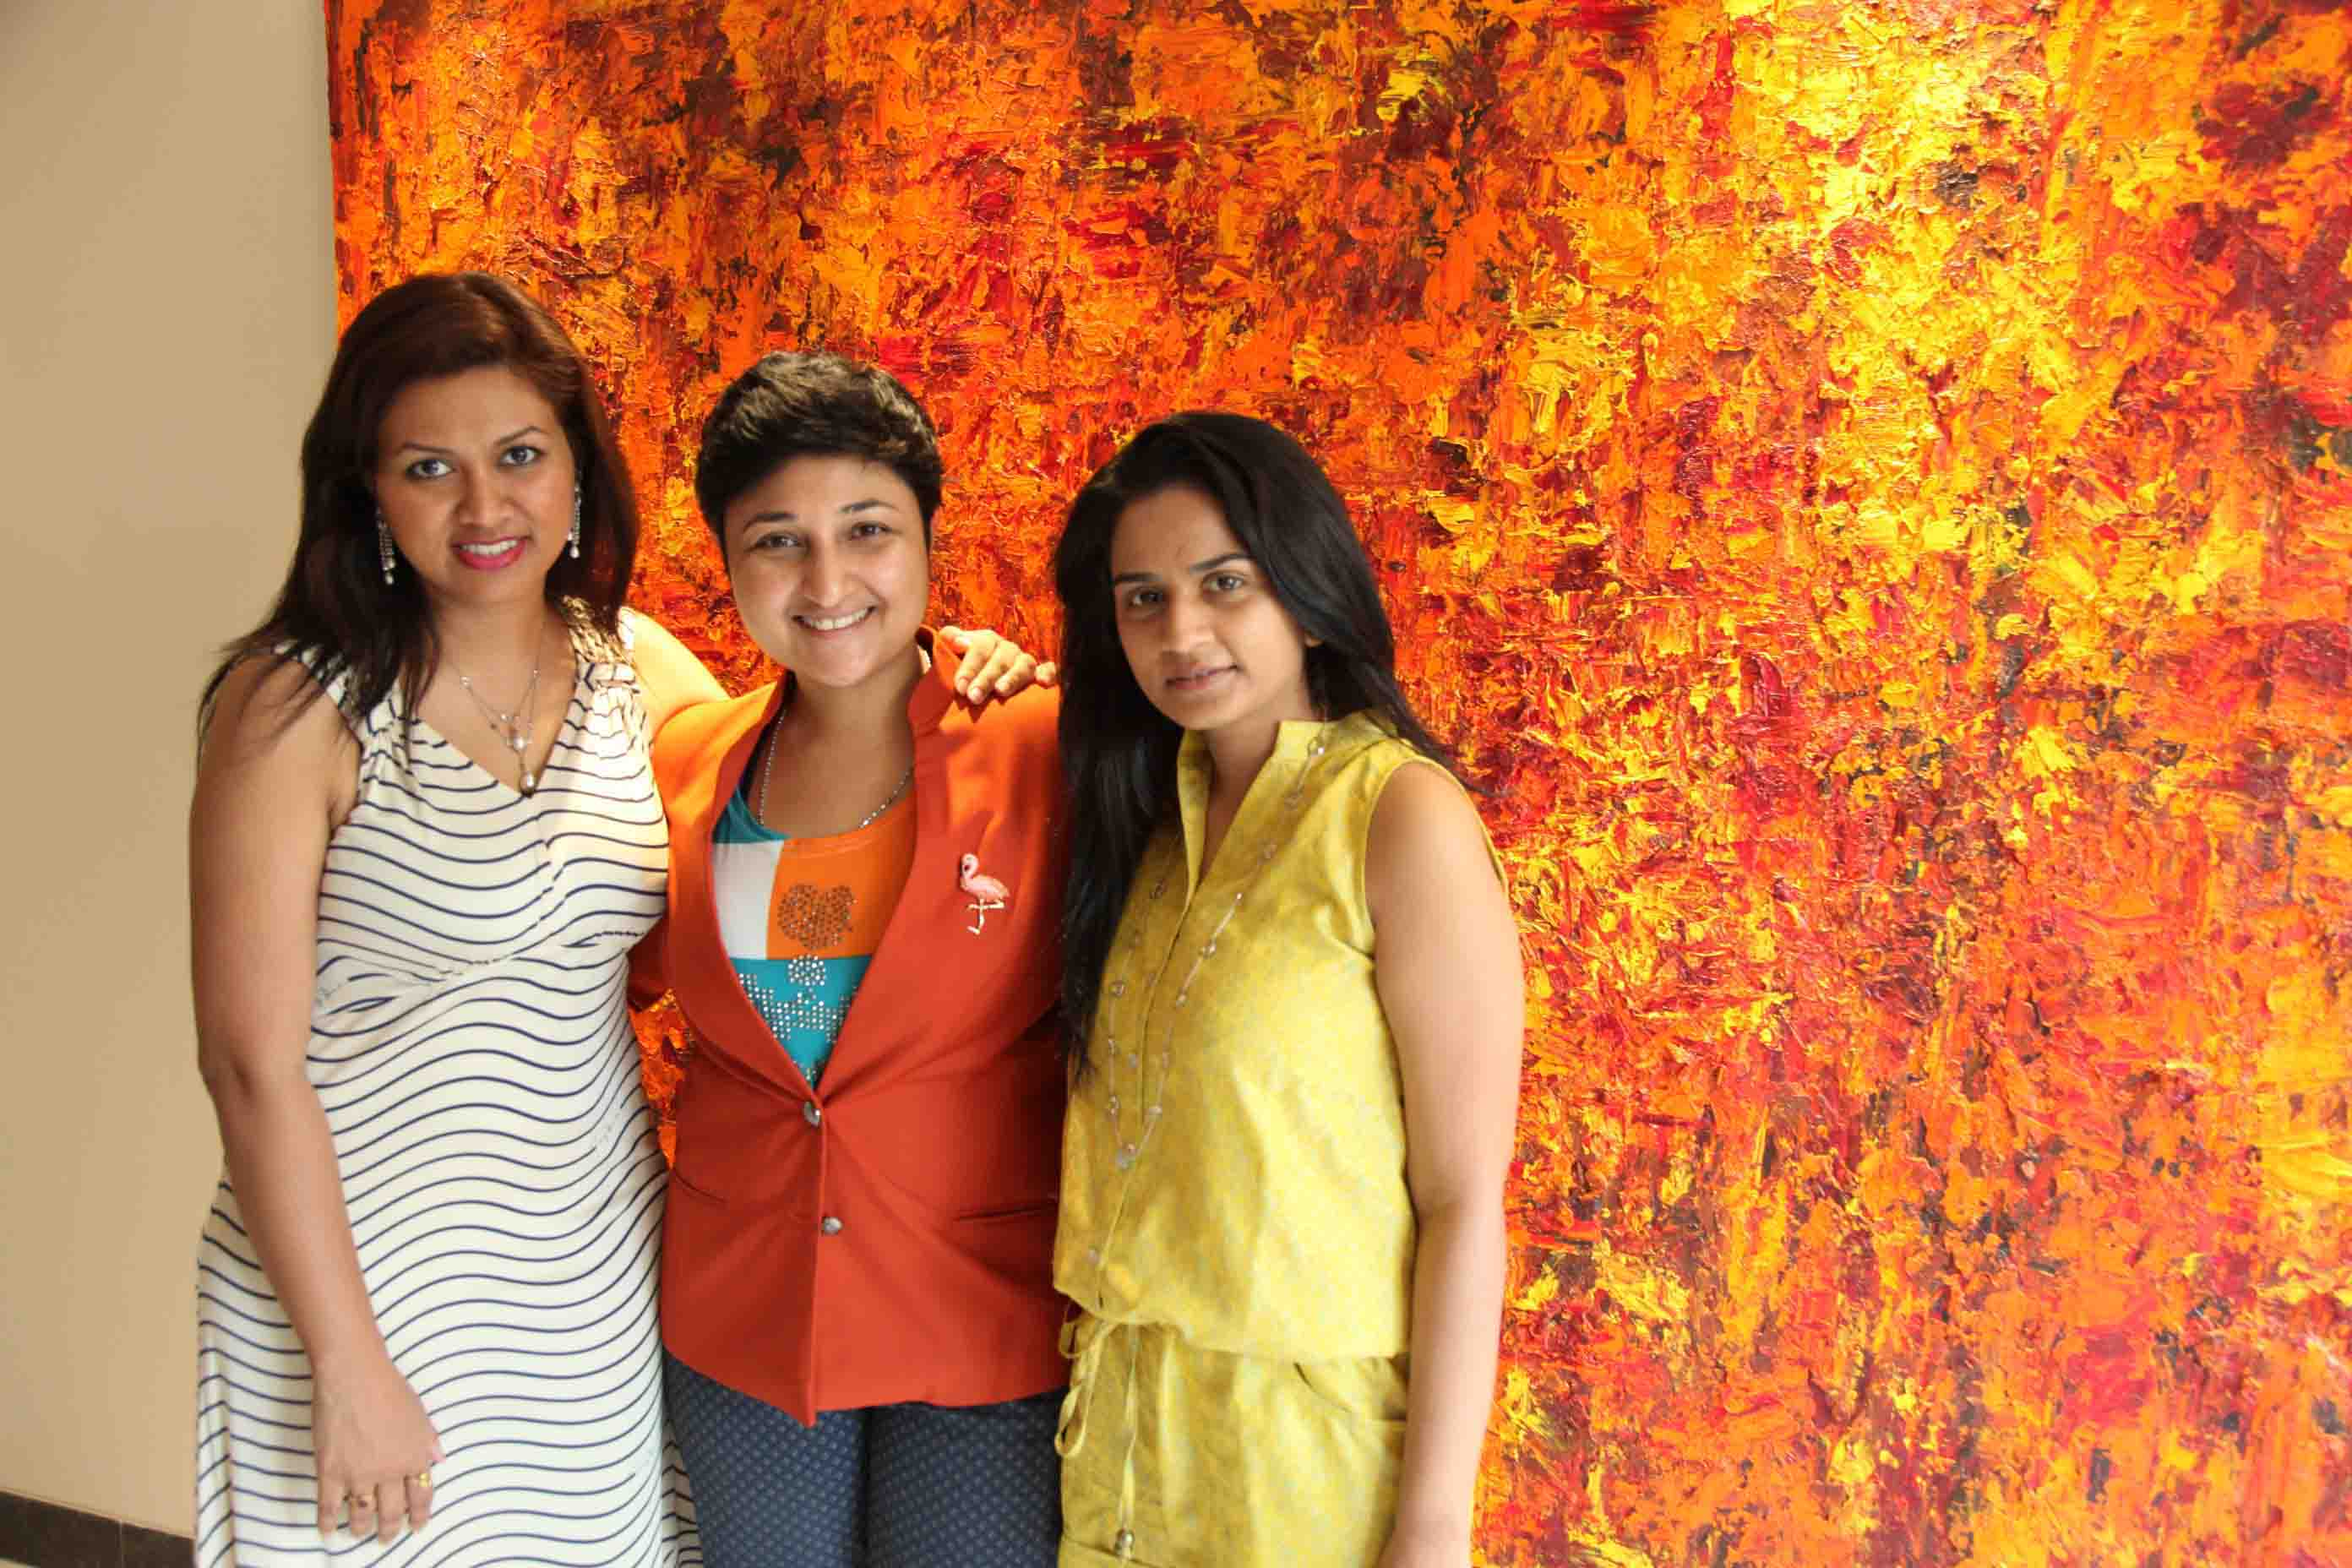 Saloni Doshi and Devita Saraf, Sharmistha Ray, Bellevue Brunches, Arty Hearty